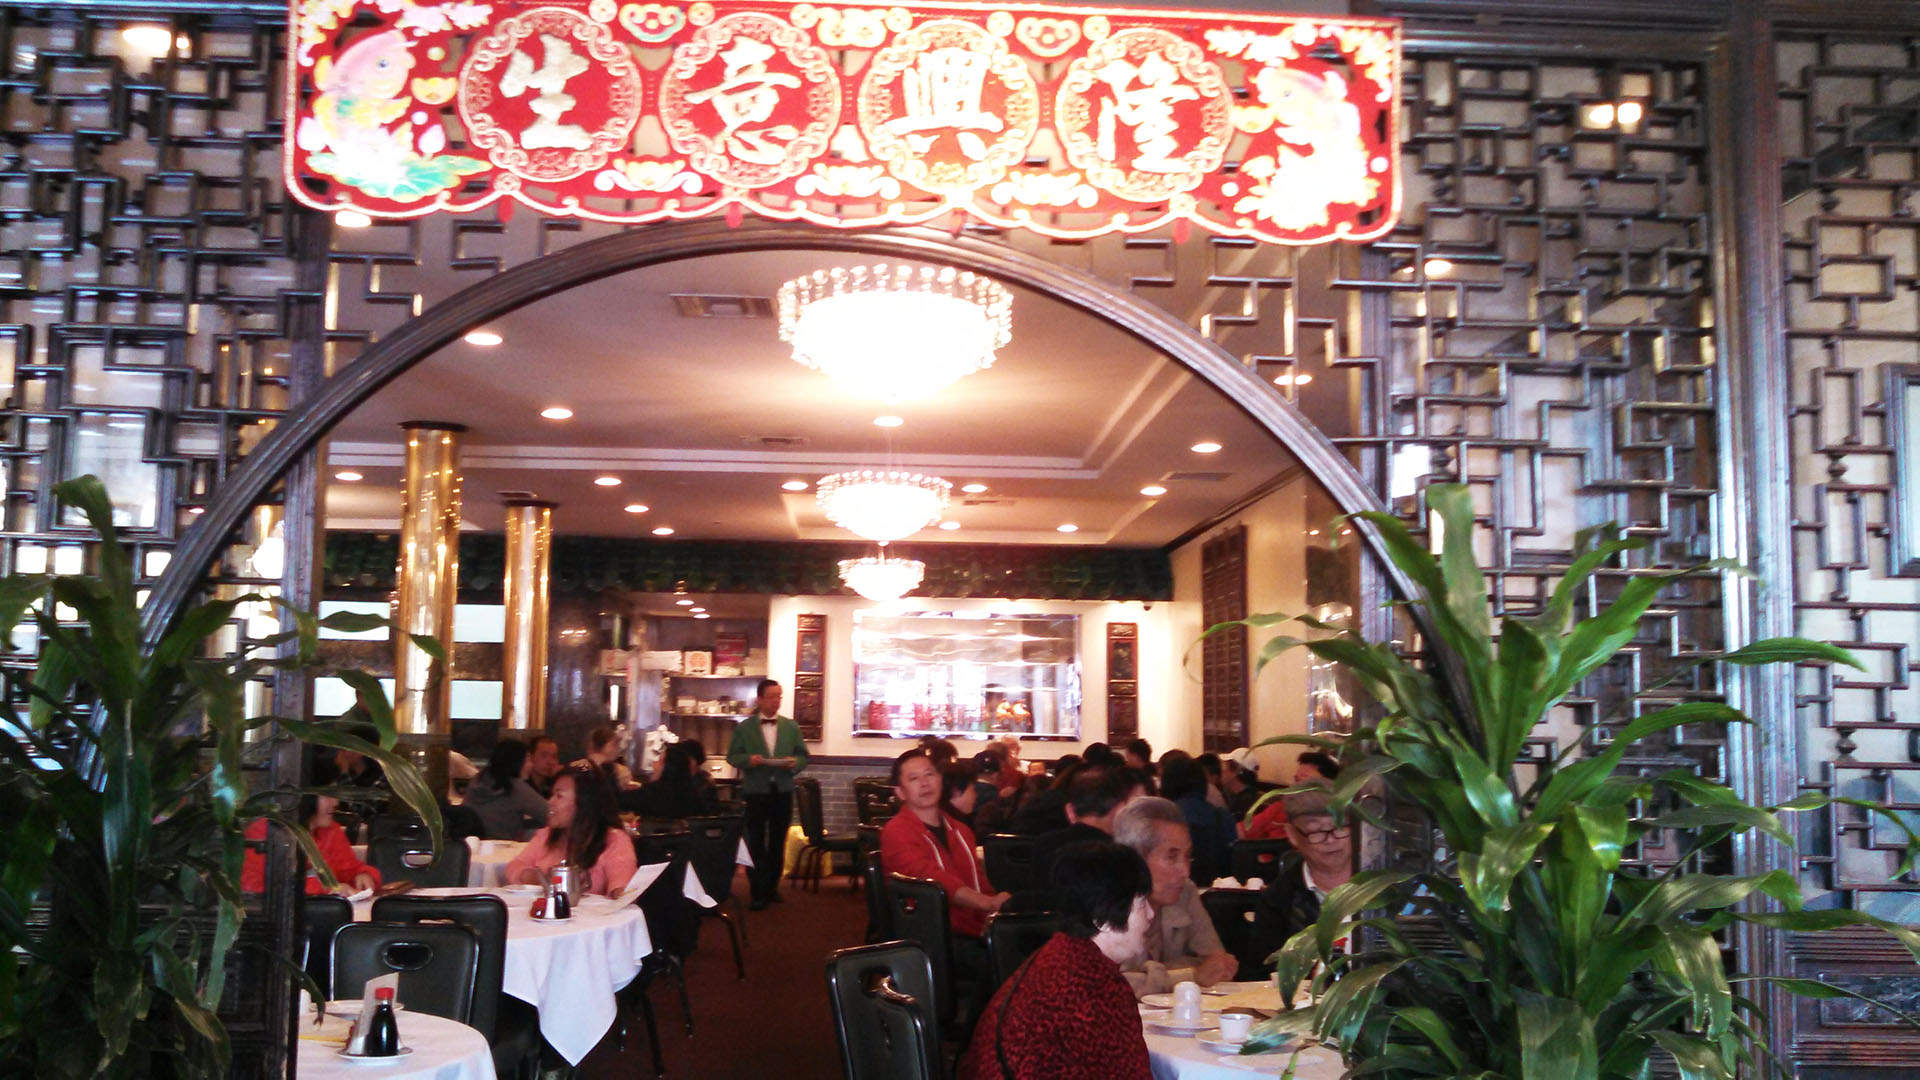 The Great Eastern dining room